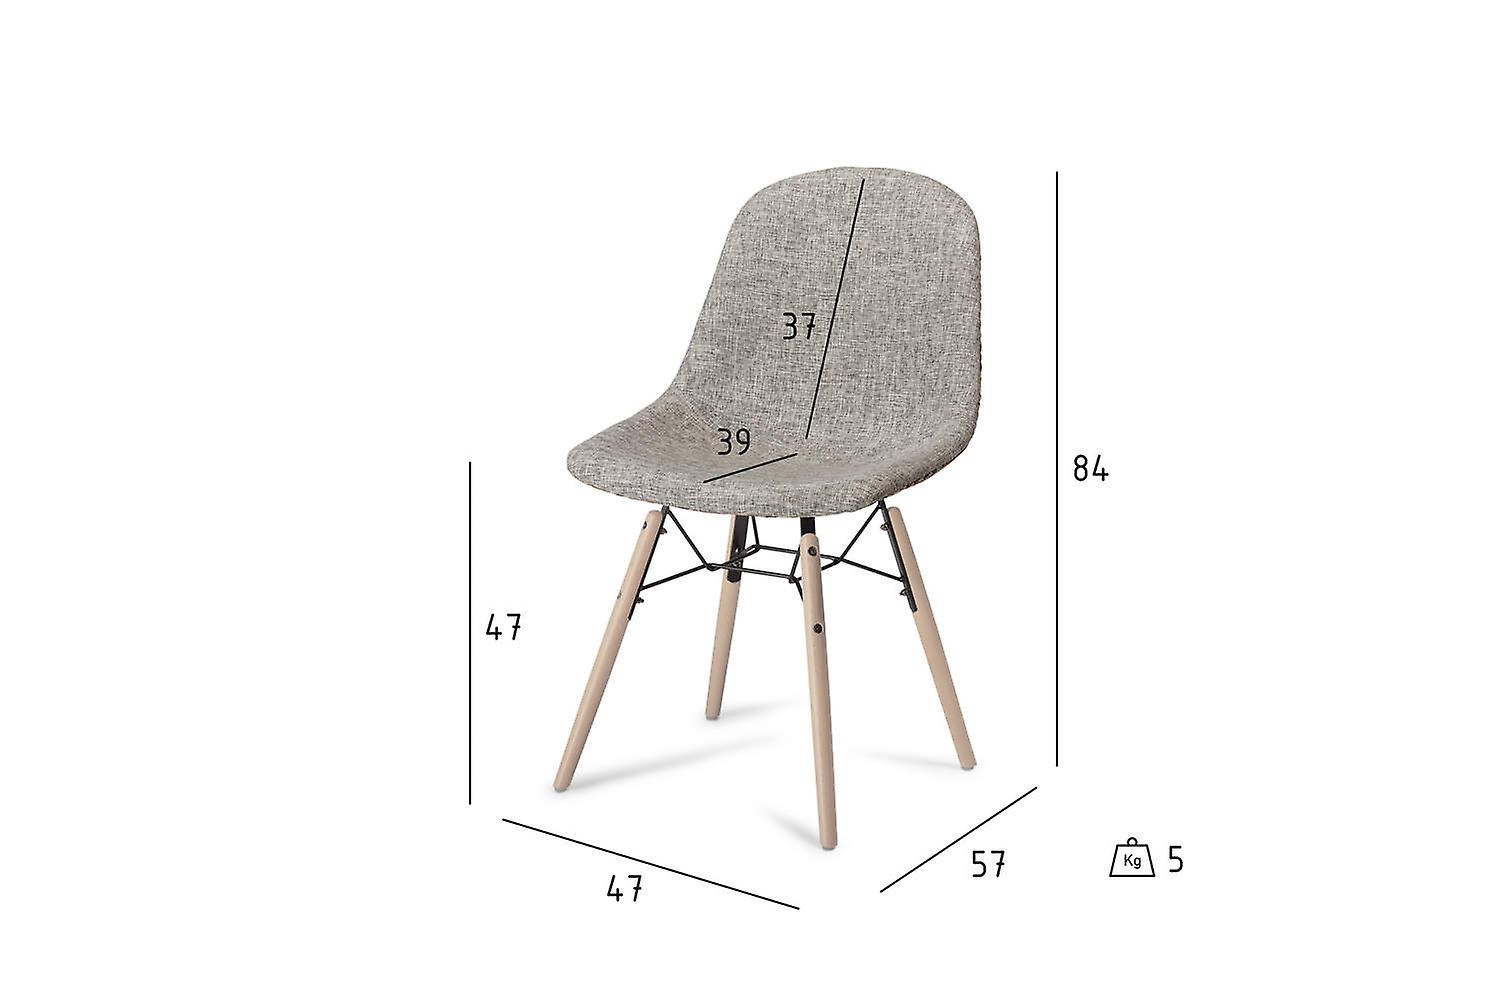 Furnhouse Sun Dining Chair, Red/Grey, Natural Legs, 47x57x84 cm, Set of 2